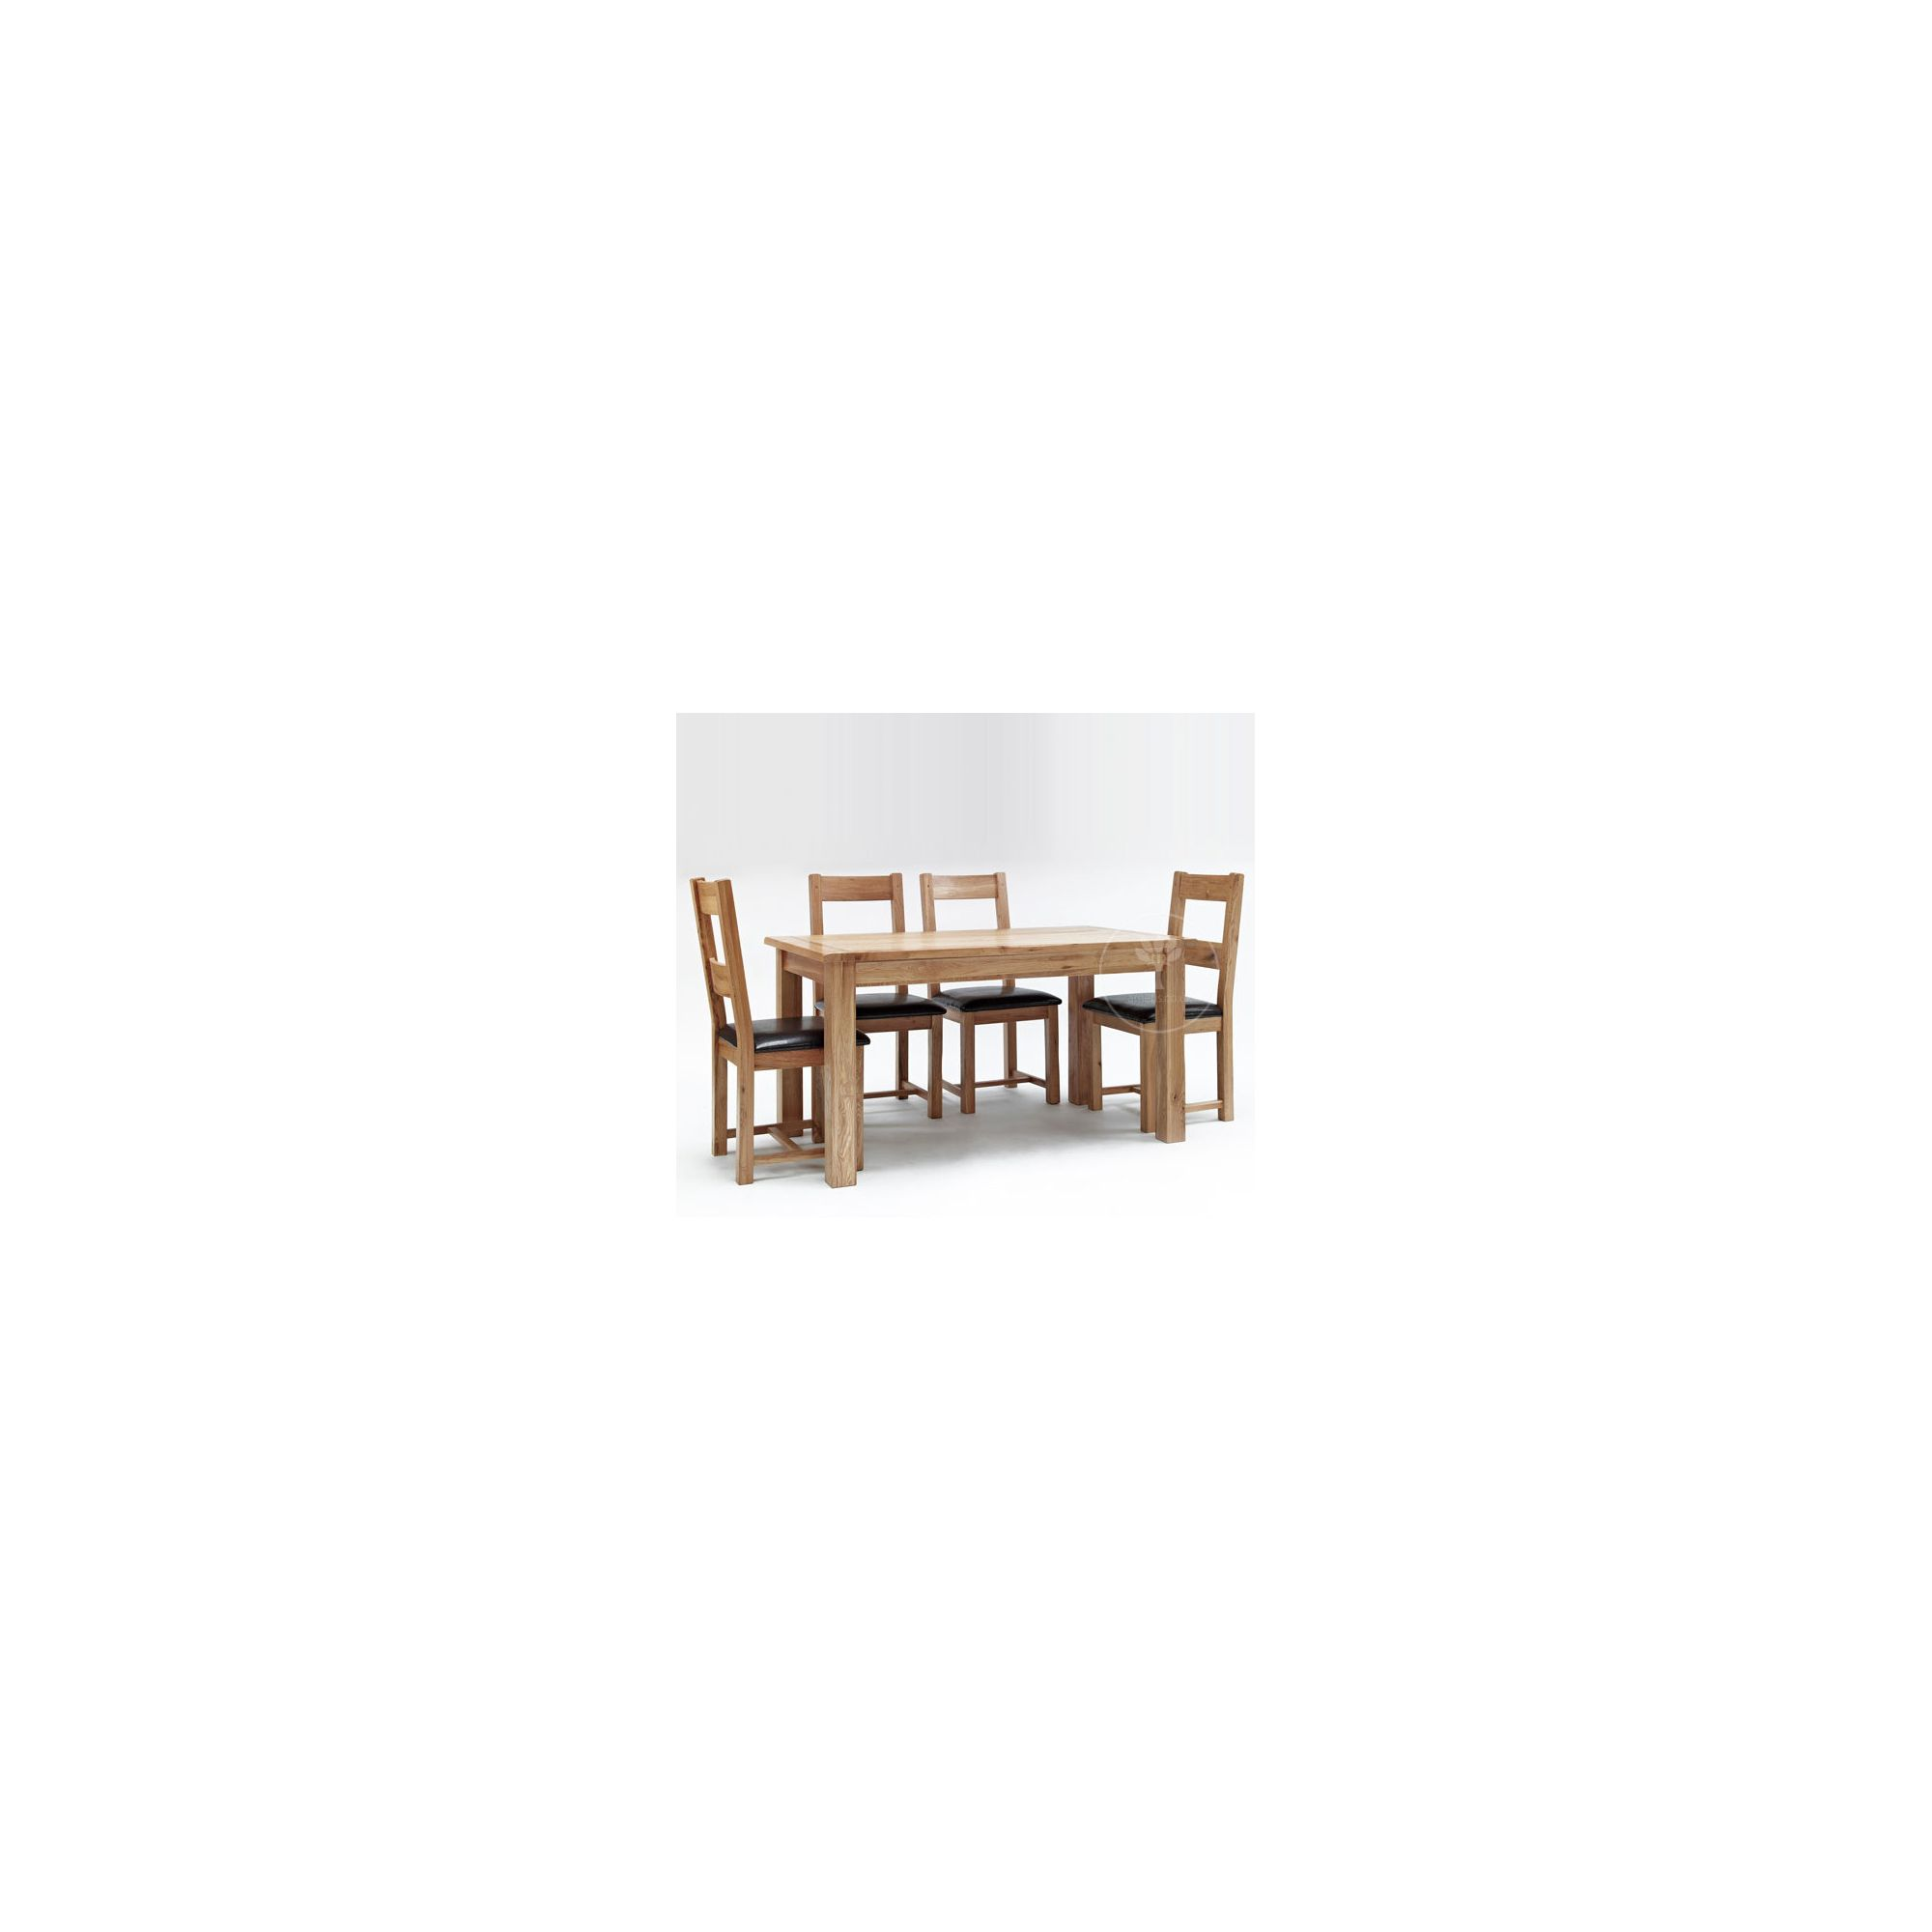 Ametis Westbury Reclaimed Oak 5 Piece Leather Dining Set at Tesco Direct